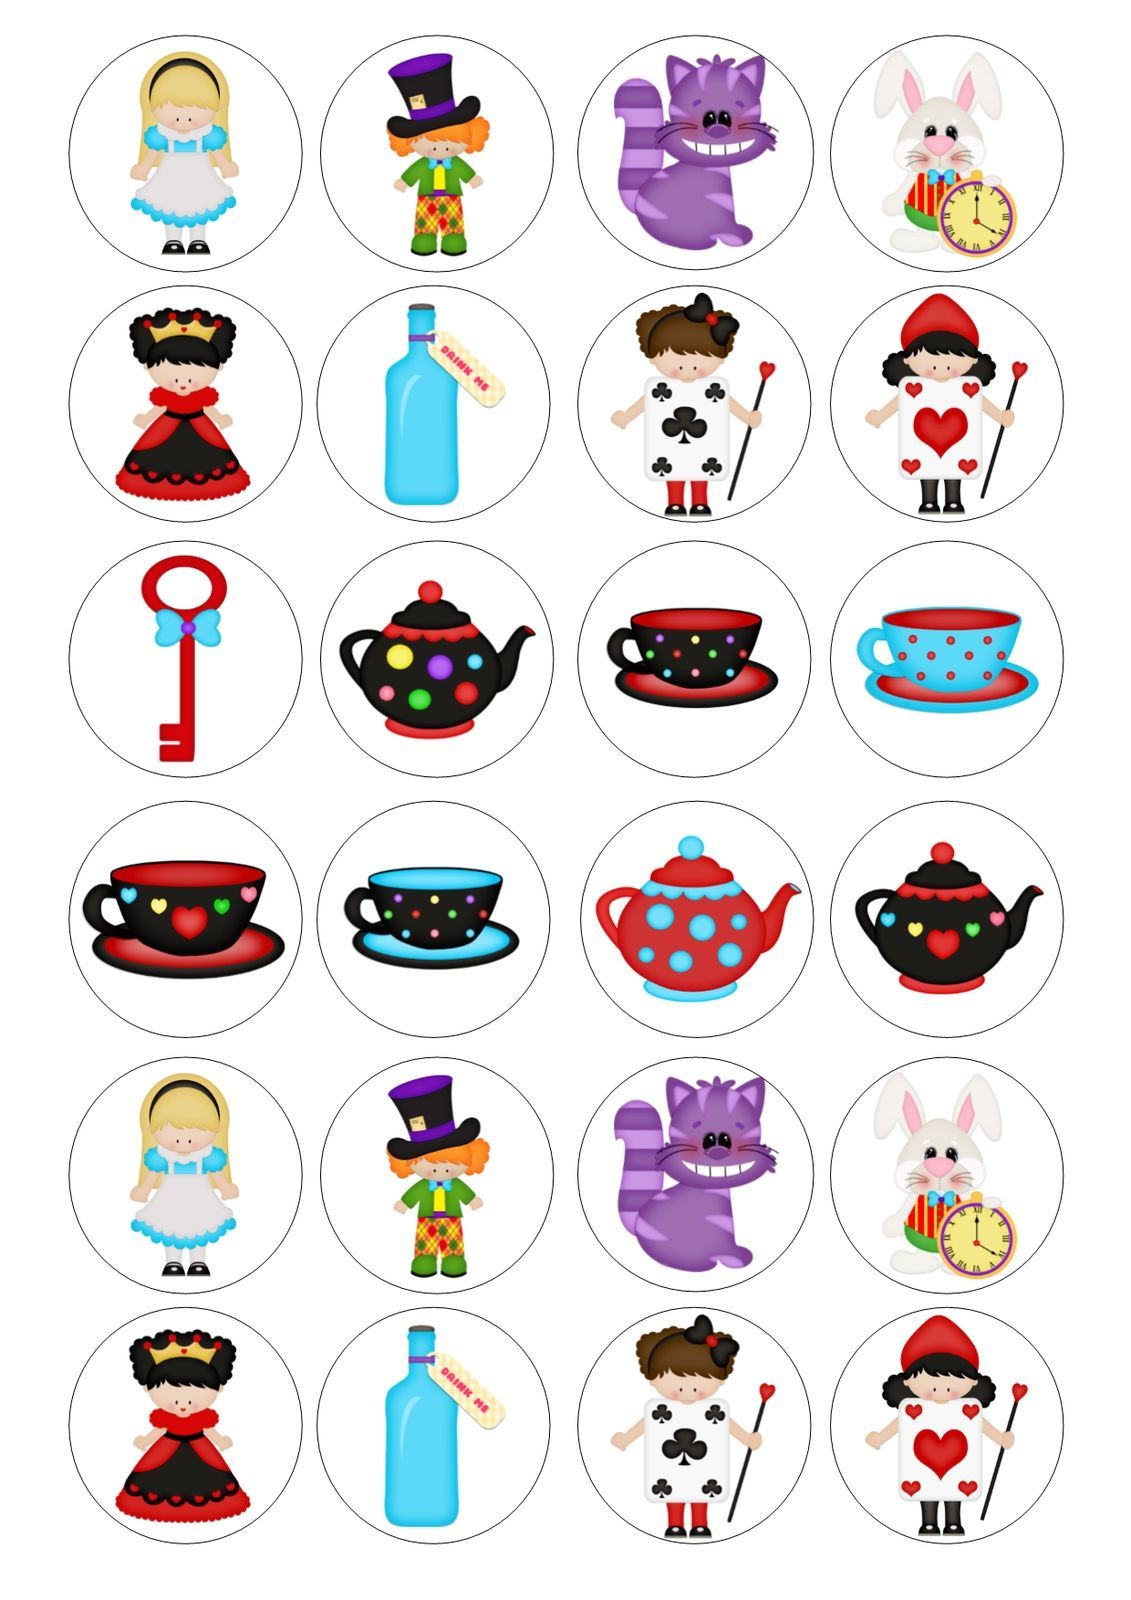 24 Alice Mad Hatter Tea Party Wafer Cupcake Topper Fairy Cake Bun Toppers Ebay Alice In Wonderland Tea Party Alice In Wonderland Mad Hatter Tea